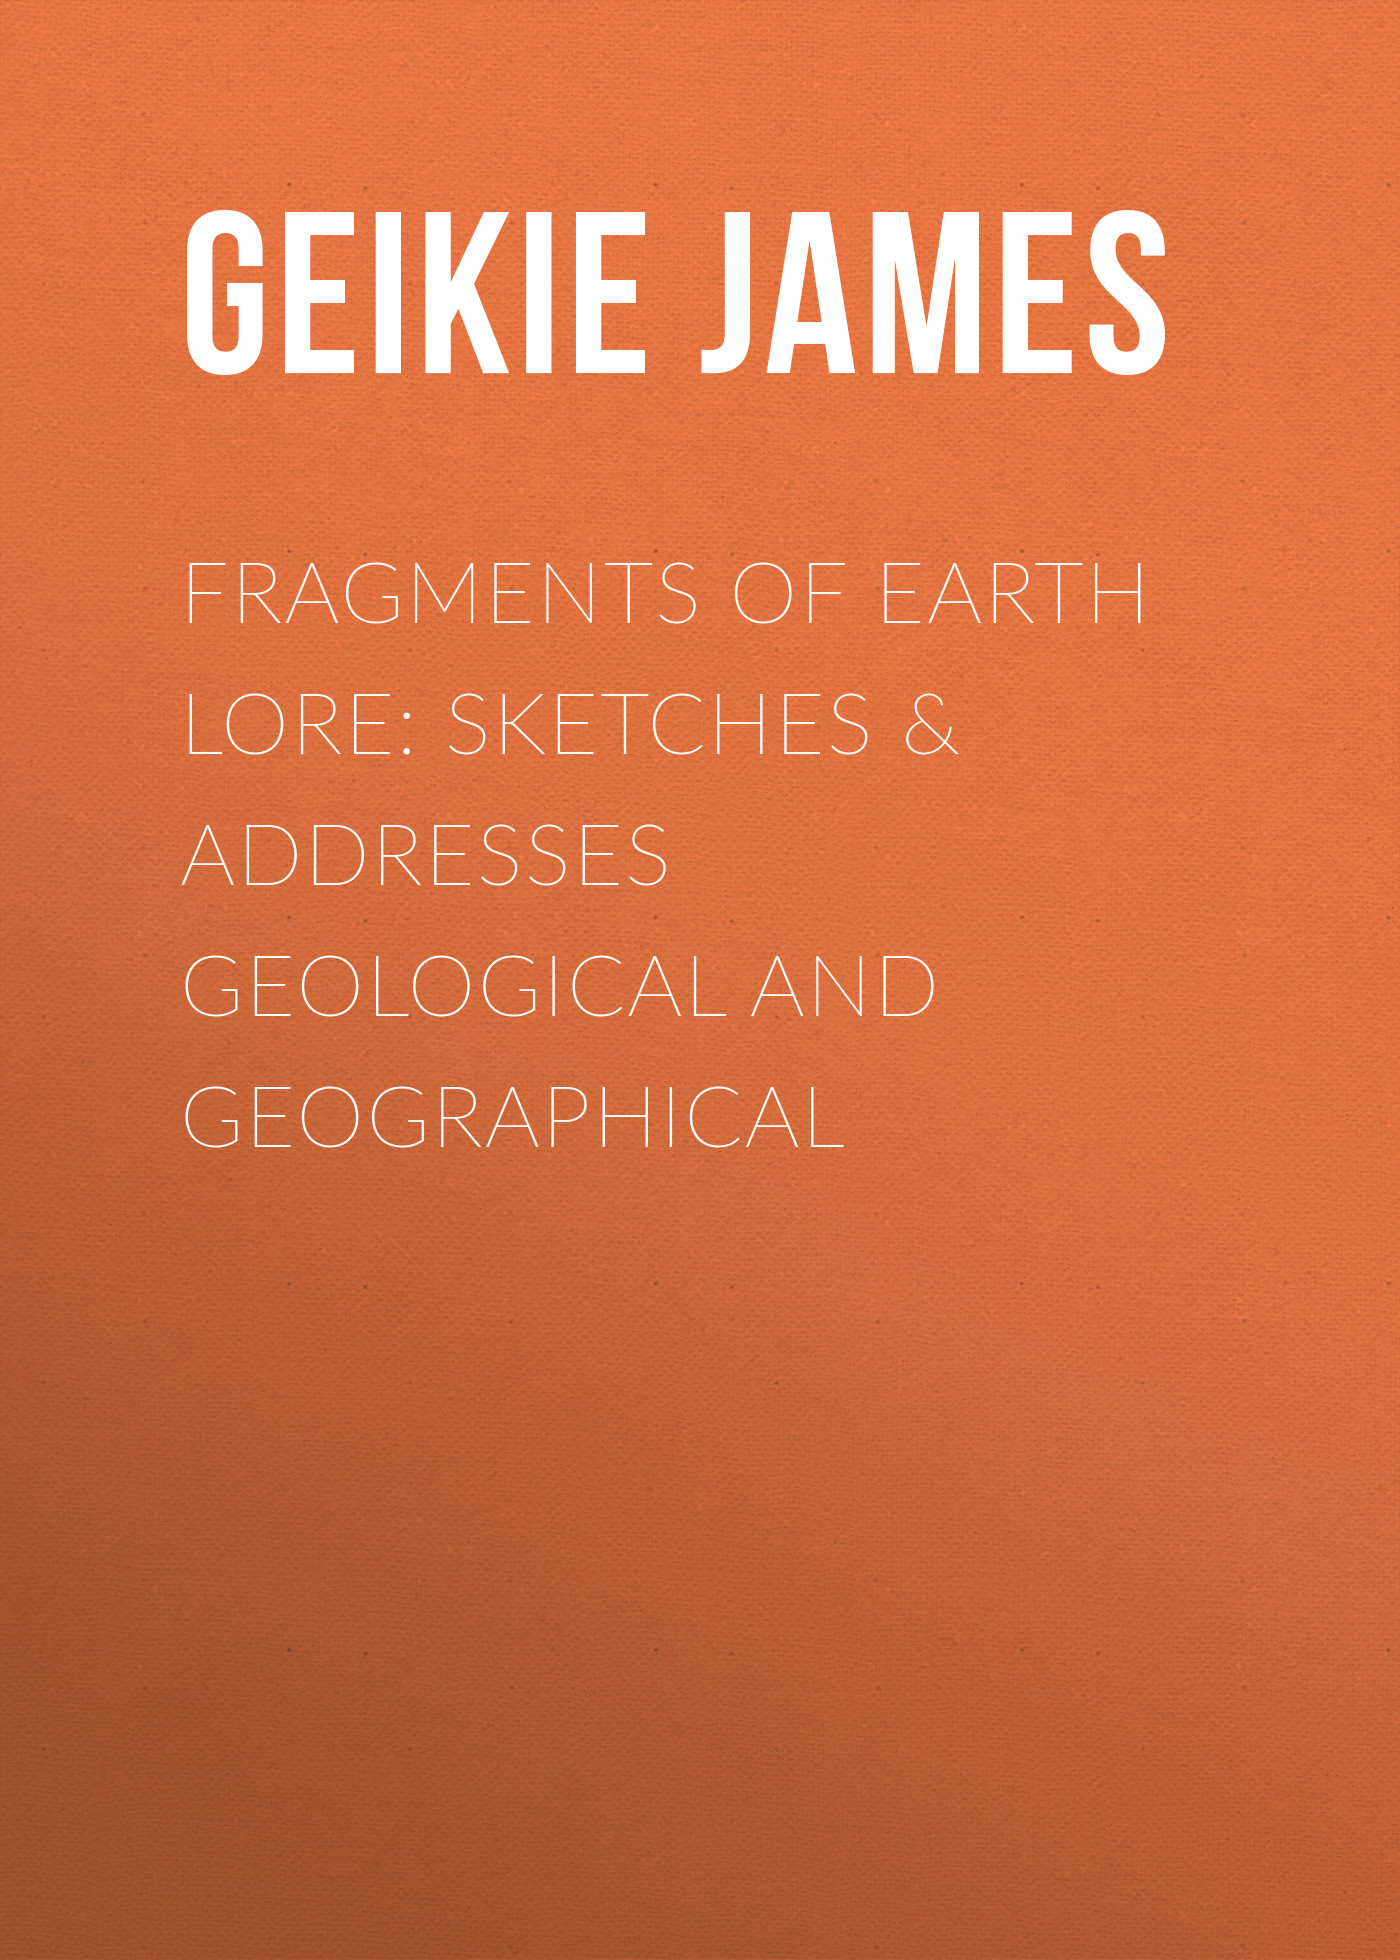 Geikie James Fragments of Earth Lore: Sketches & Addresses Geological and Geographical ostin футболка с новогодним принтом